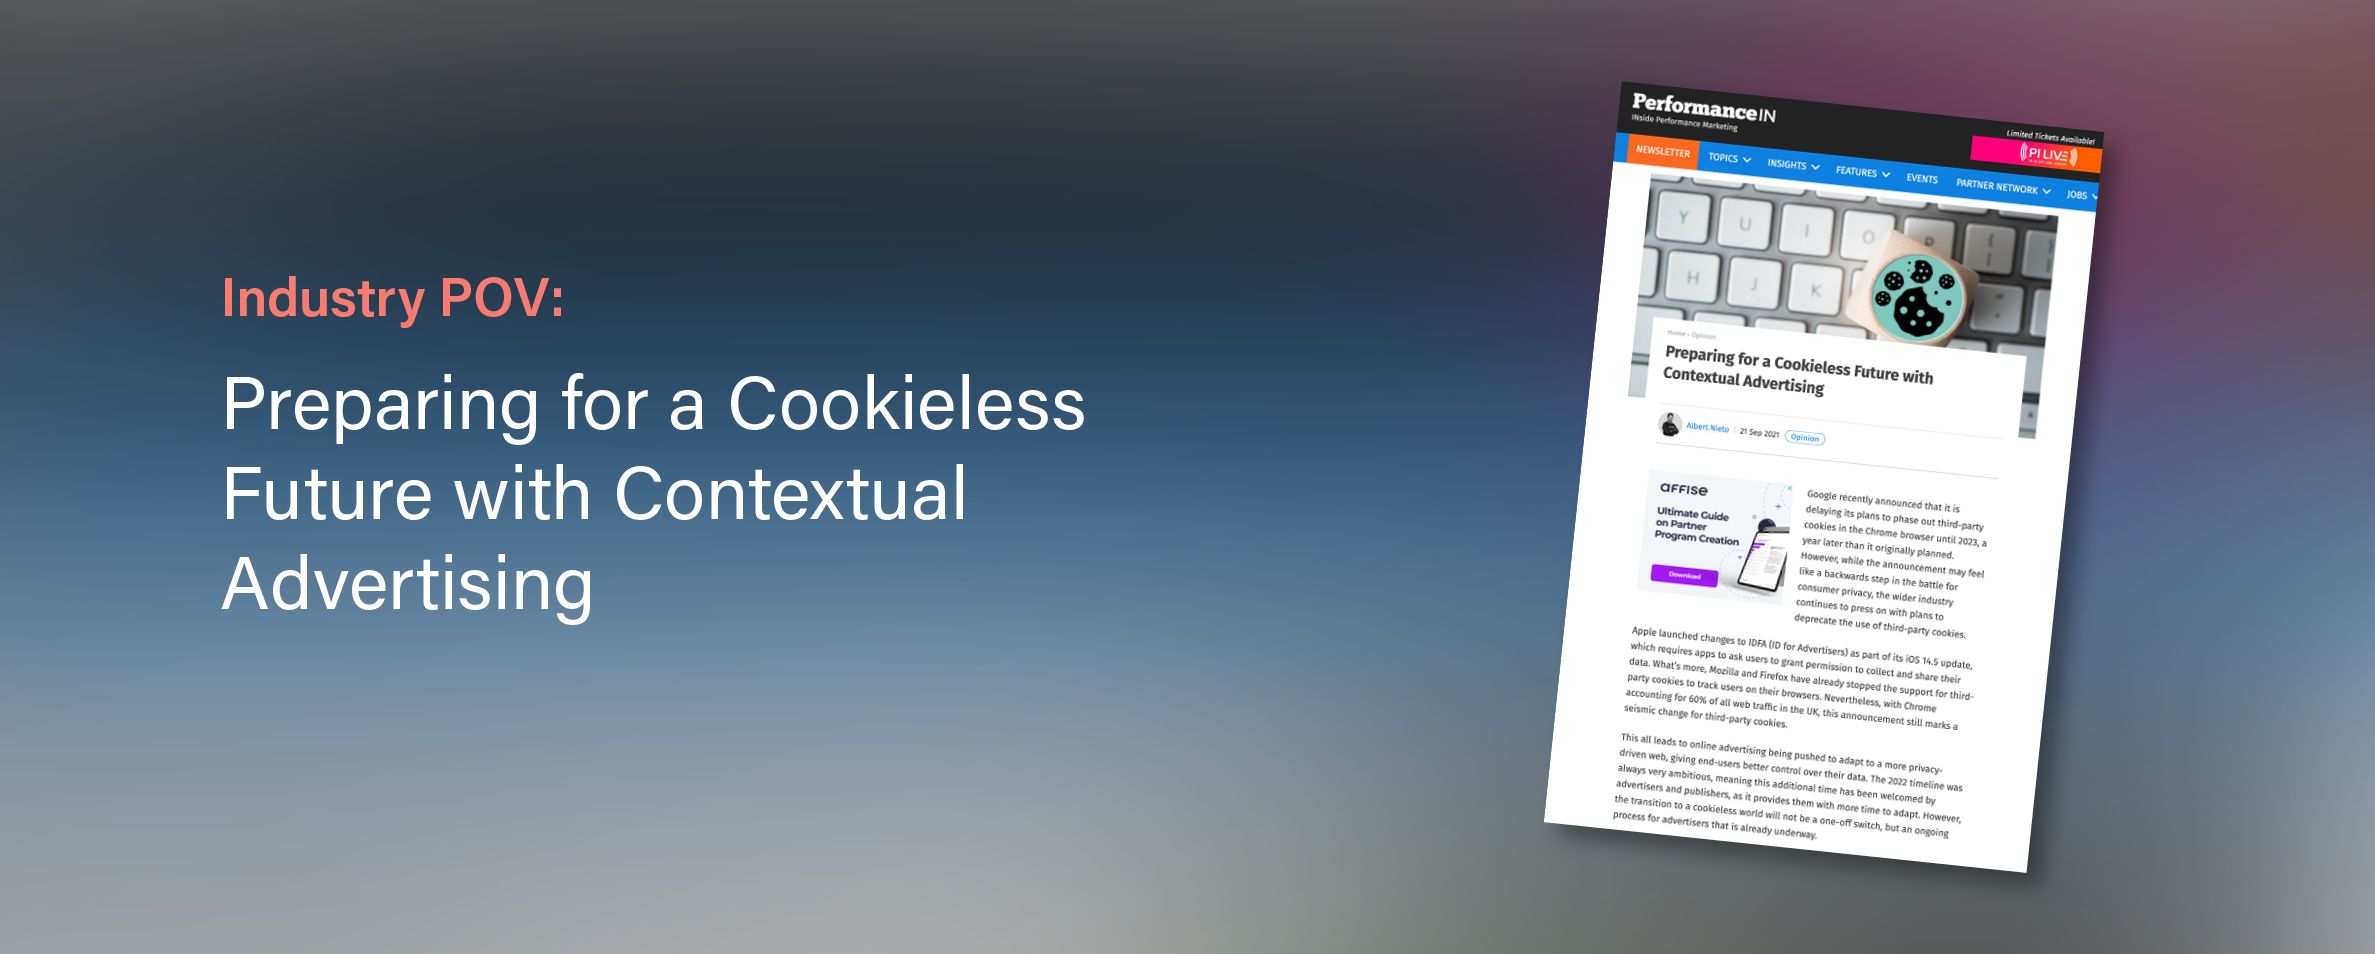 PerformanceIn: Preparing For A Cookieless Future With Contextual Advertising